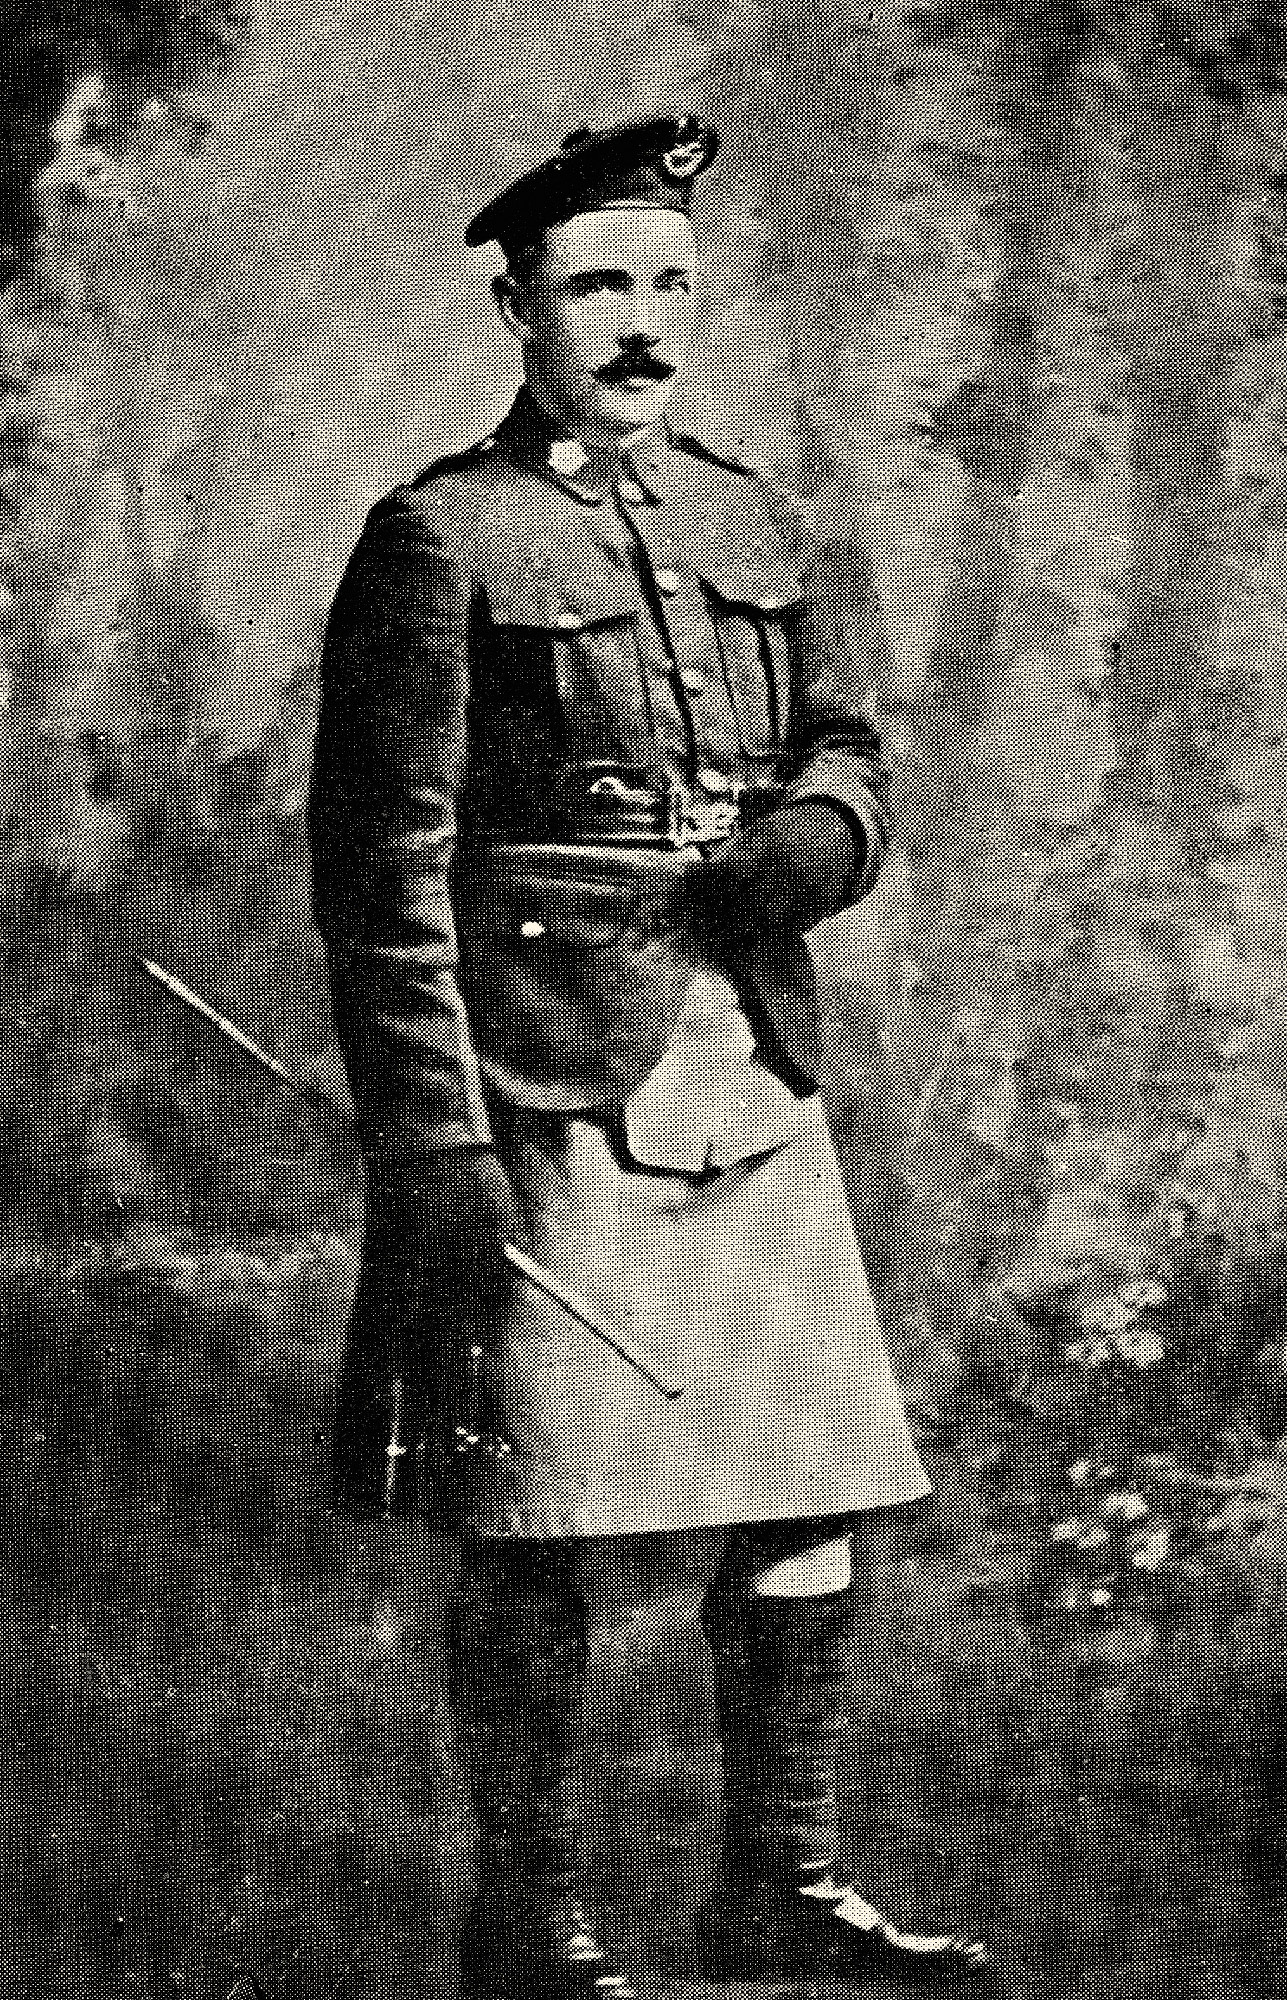 Private Charles Samuel Bannell, one of the Battalion's scouts and the only published poet of the 72nd in the First World War, was killed at Passchendaele on October 30, 1917.